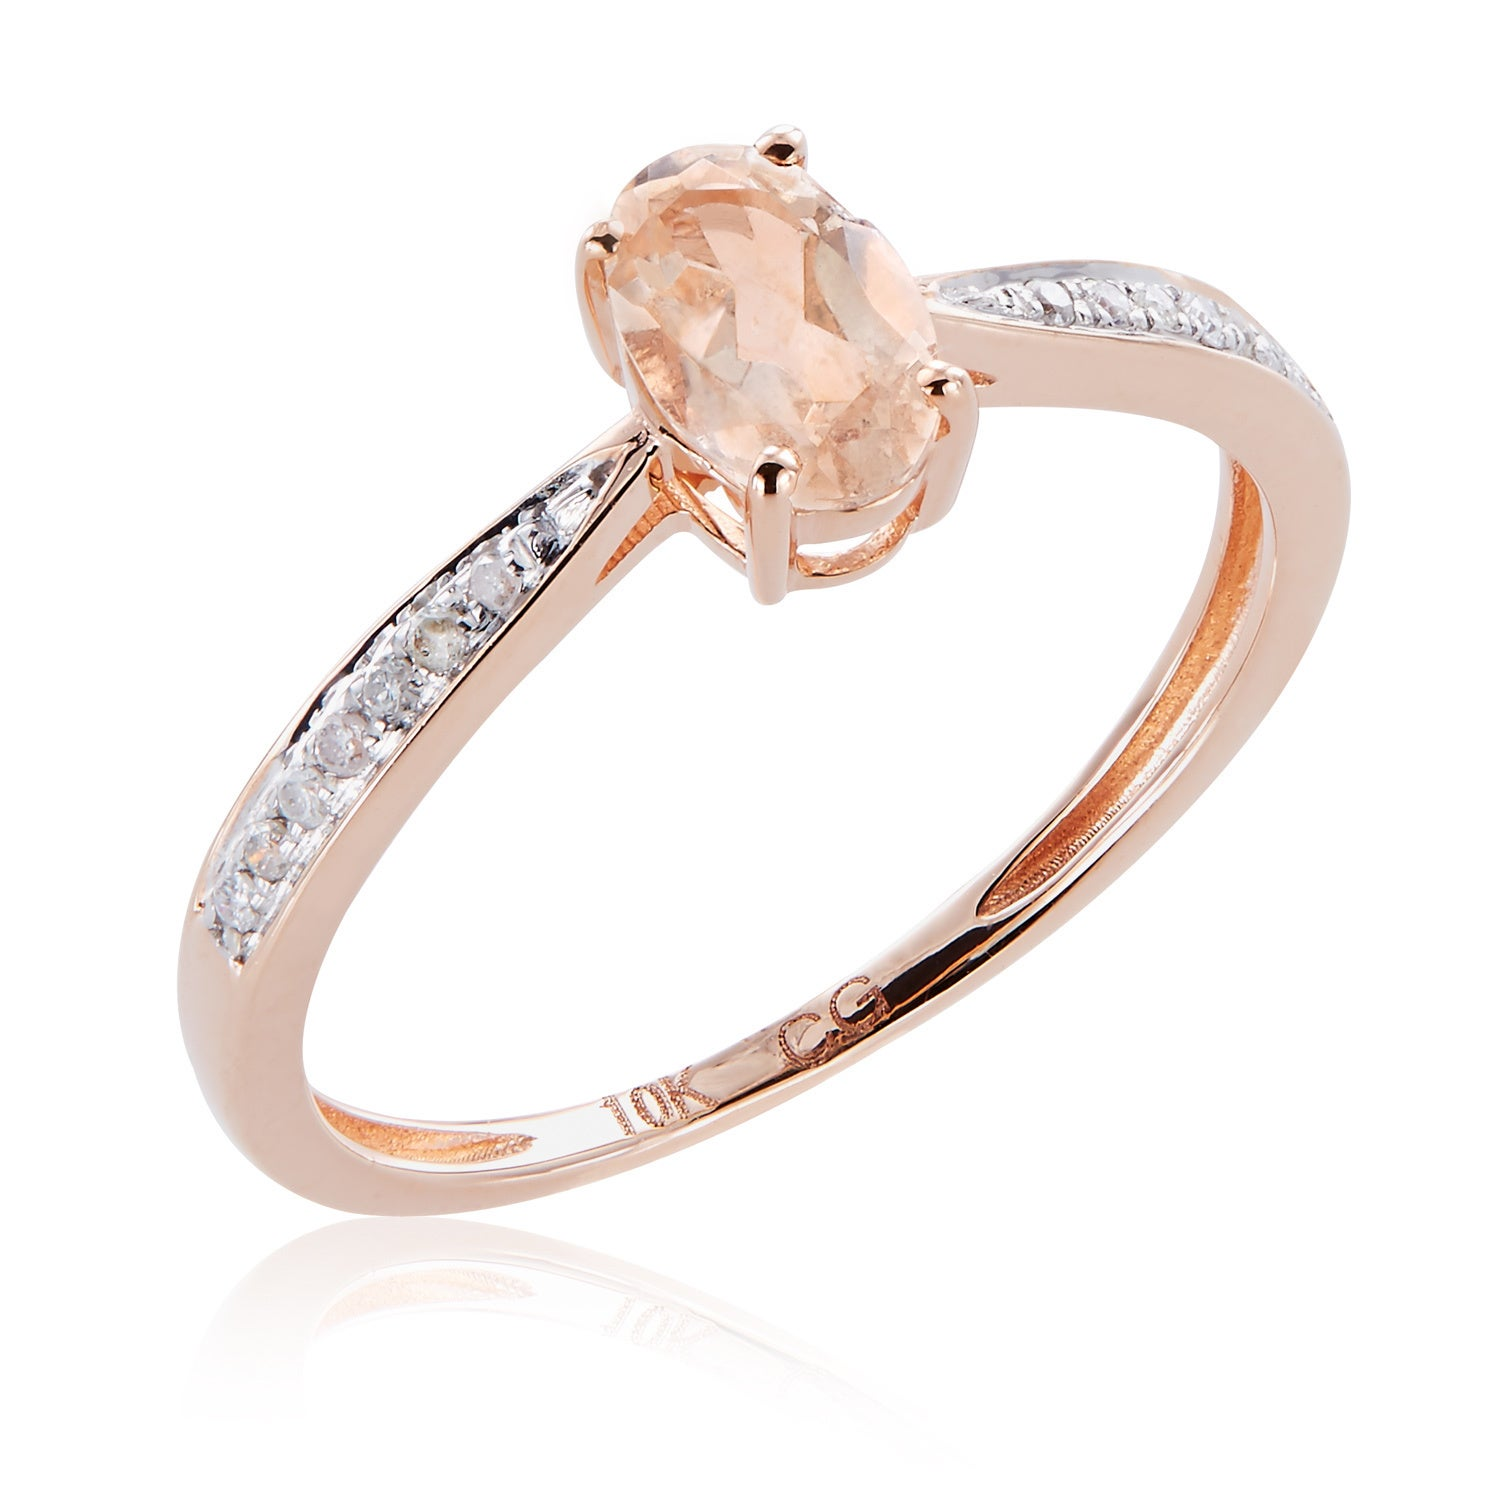 Size-6.5 G-H,I2-I3 1//10 cttw, Diamond Wedding Band in 10K Pink Gold